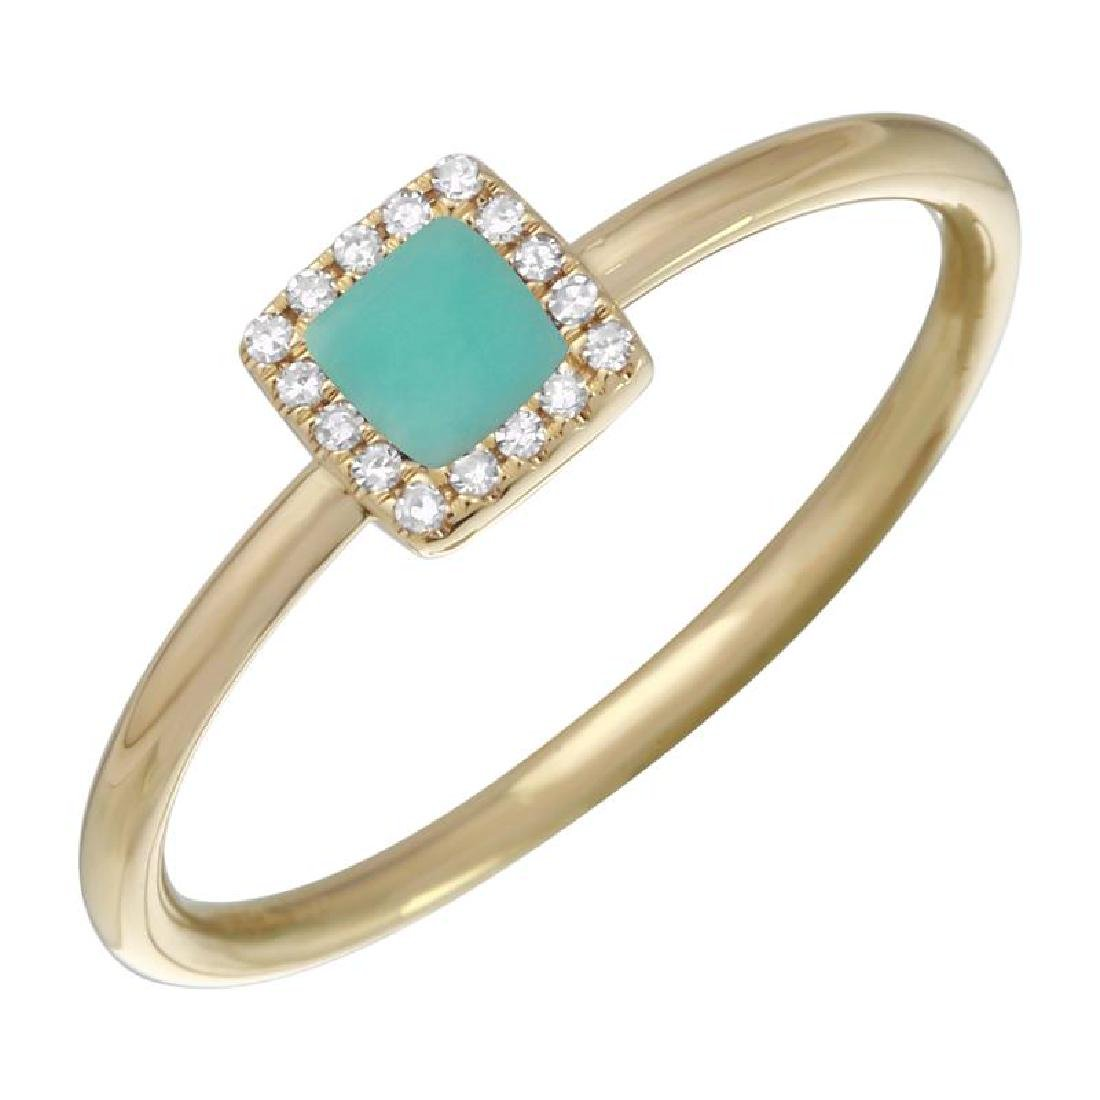 14KT Yellow Gold Gemstone Ring